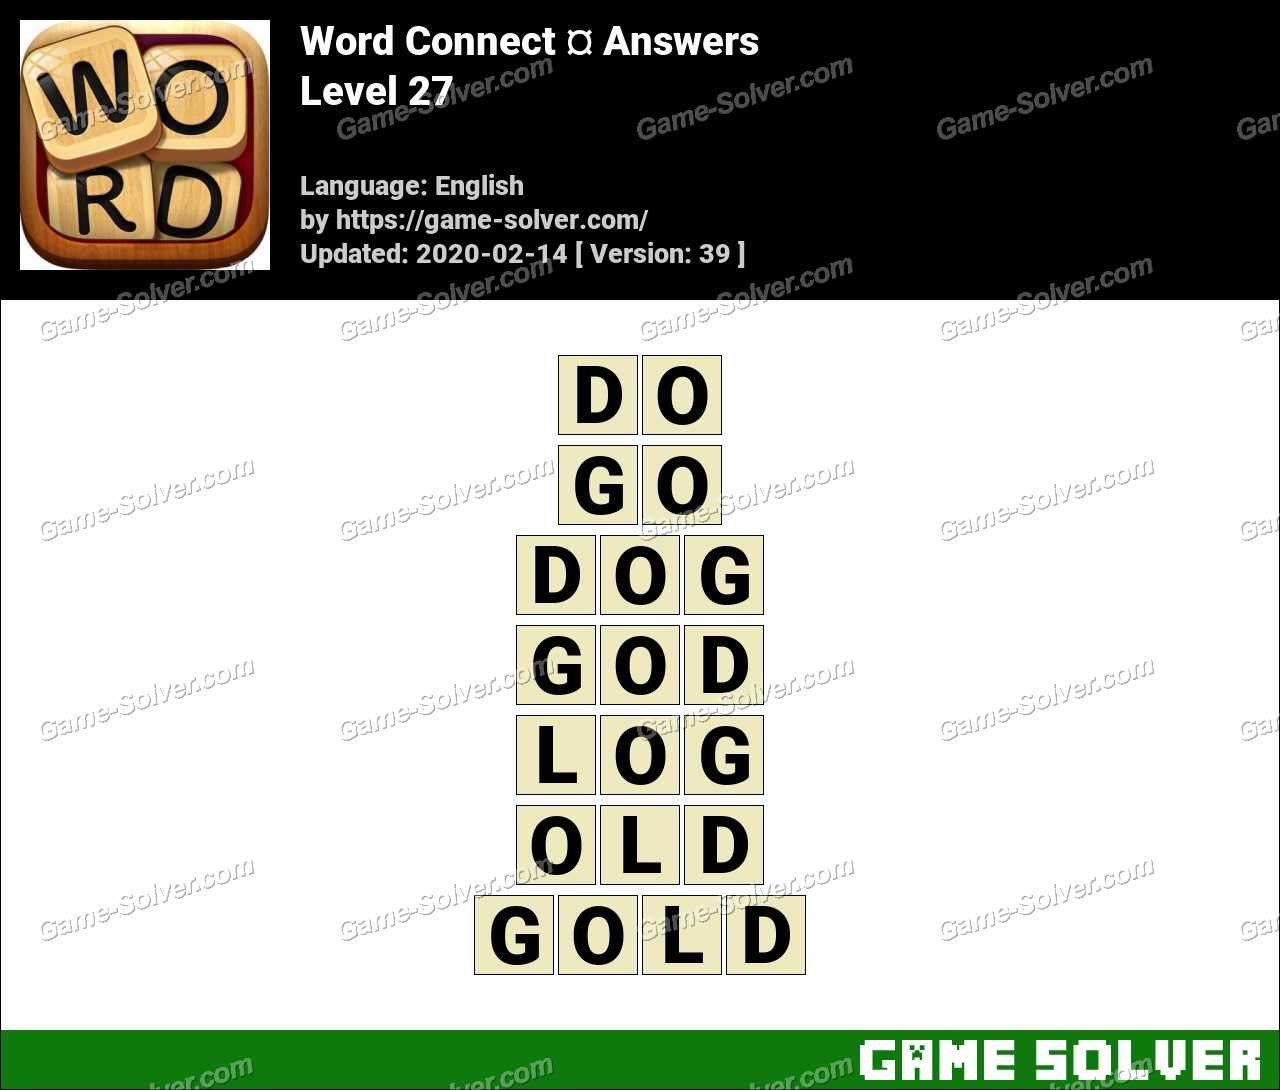 Word Connect Level 27 Answers